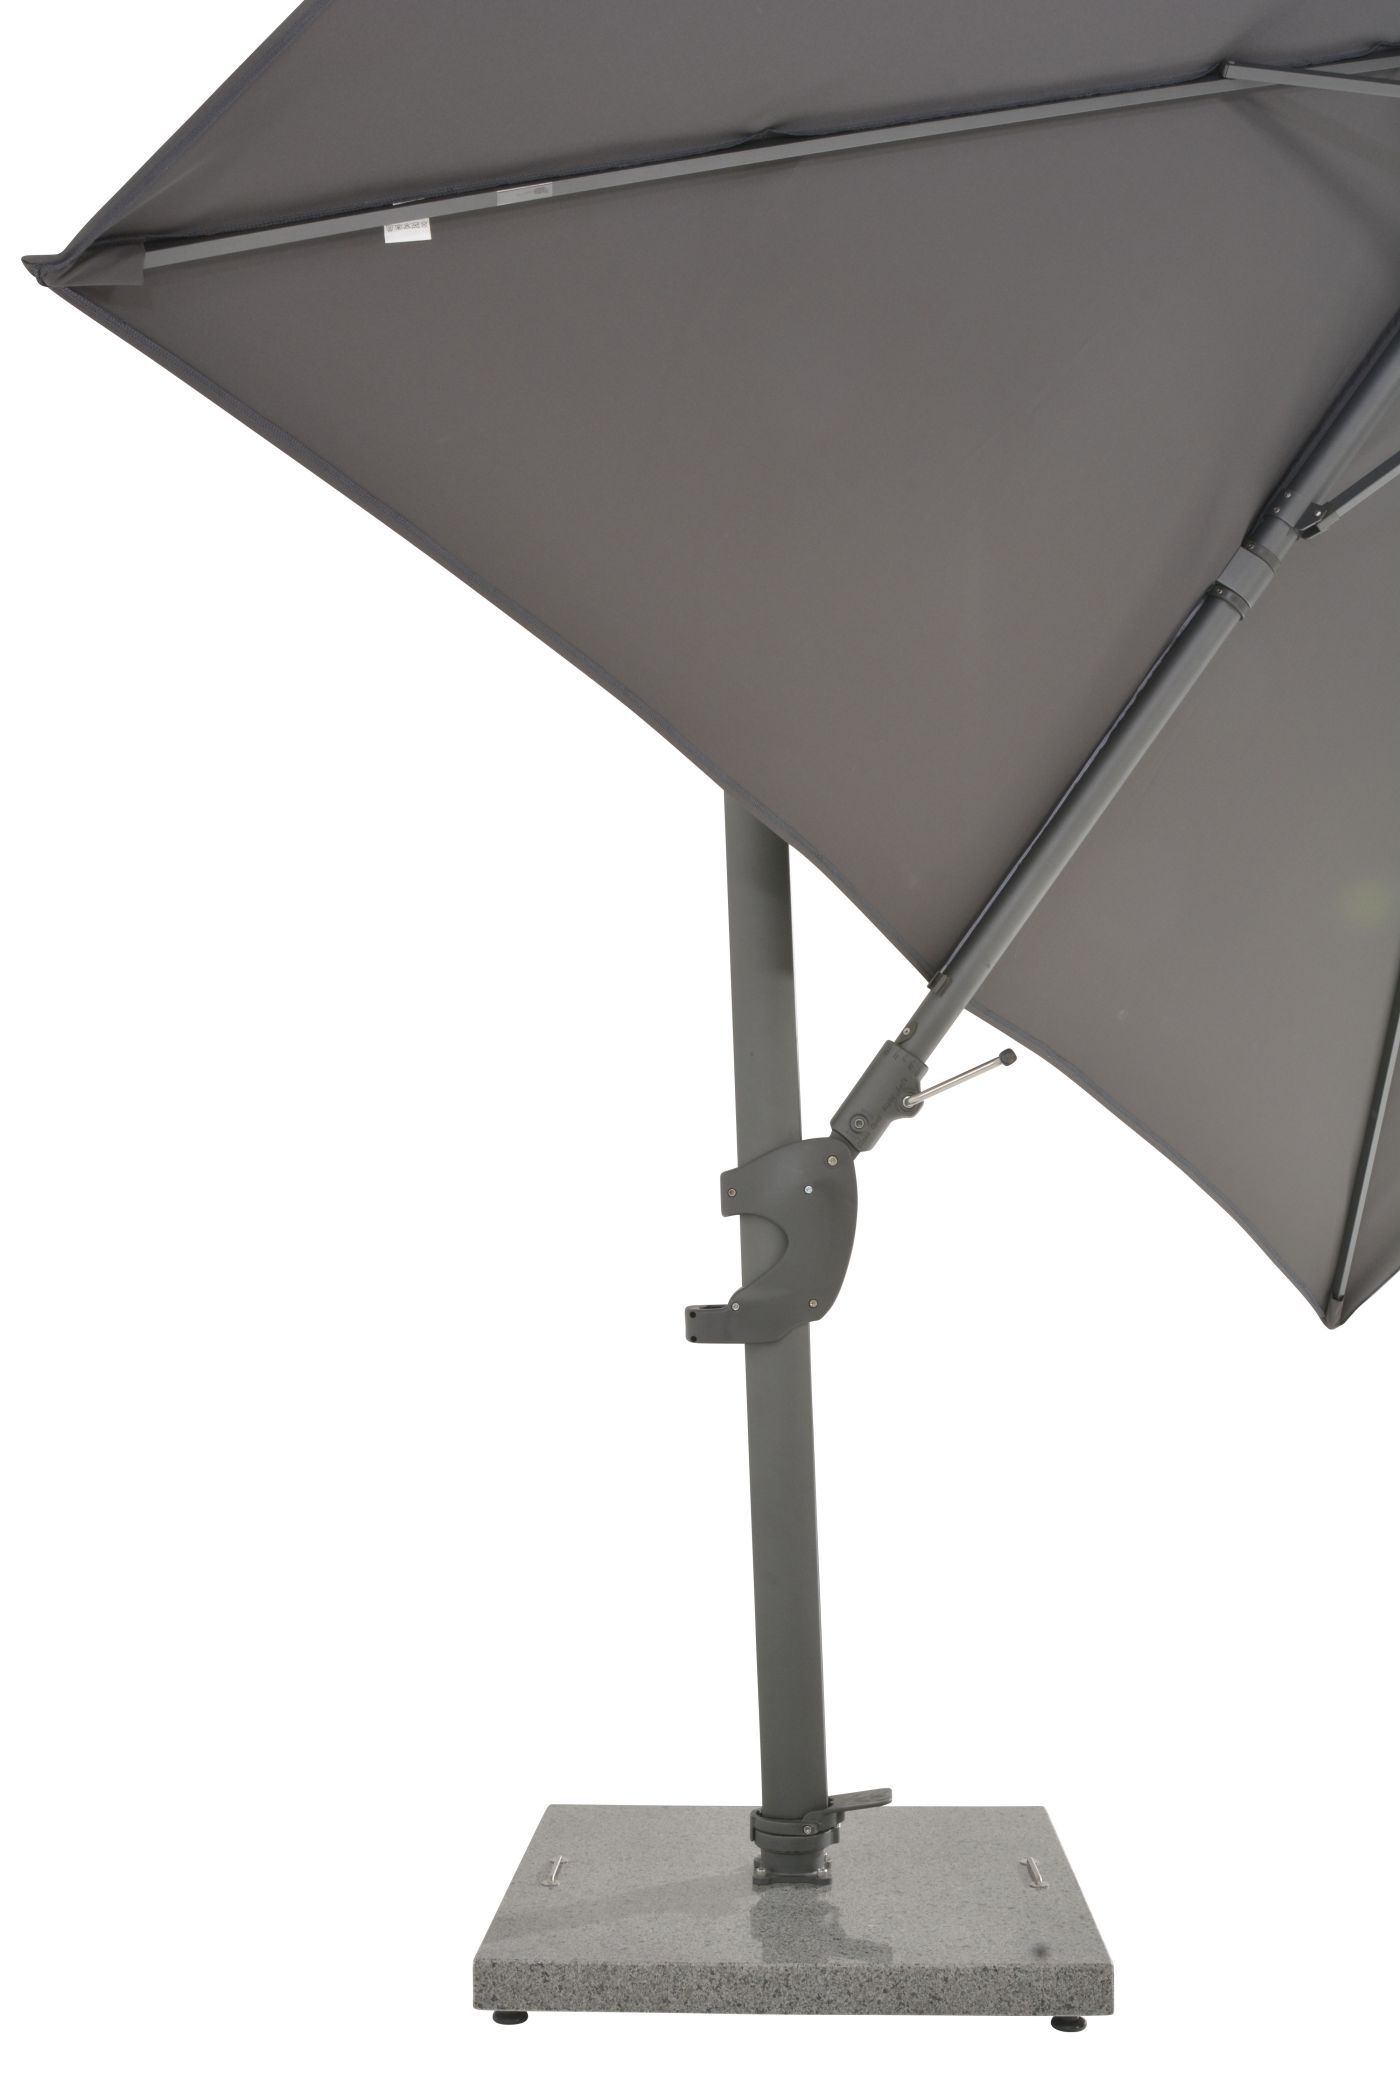 4 Seasons Outdoor horizon parasol